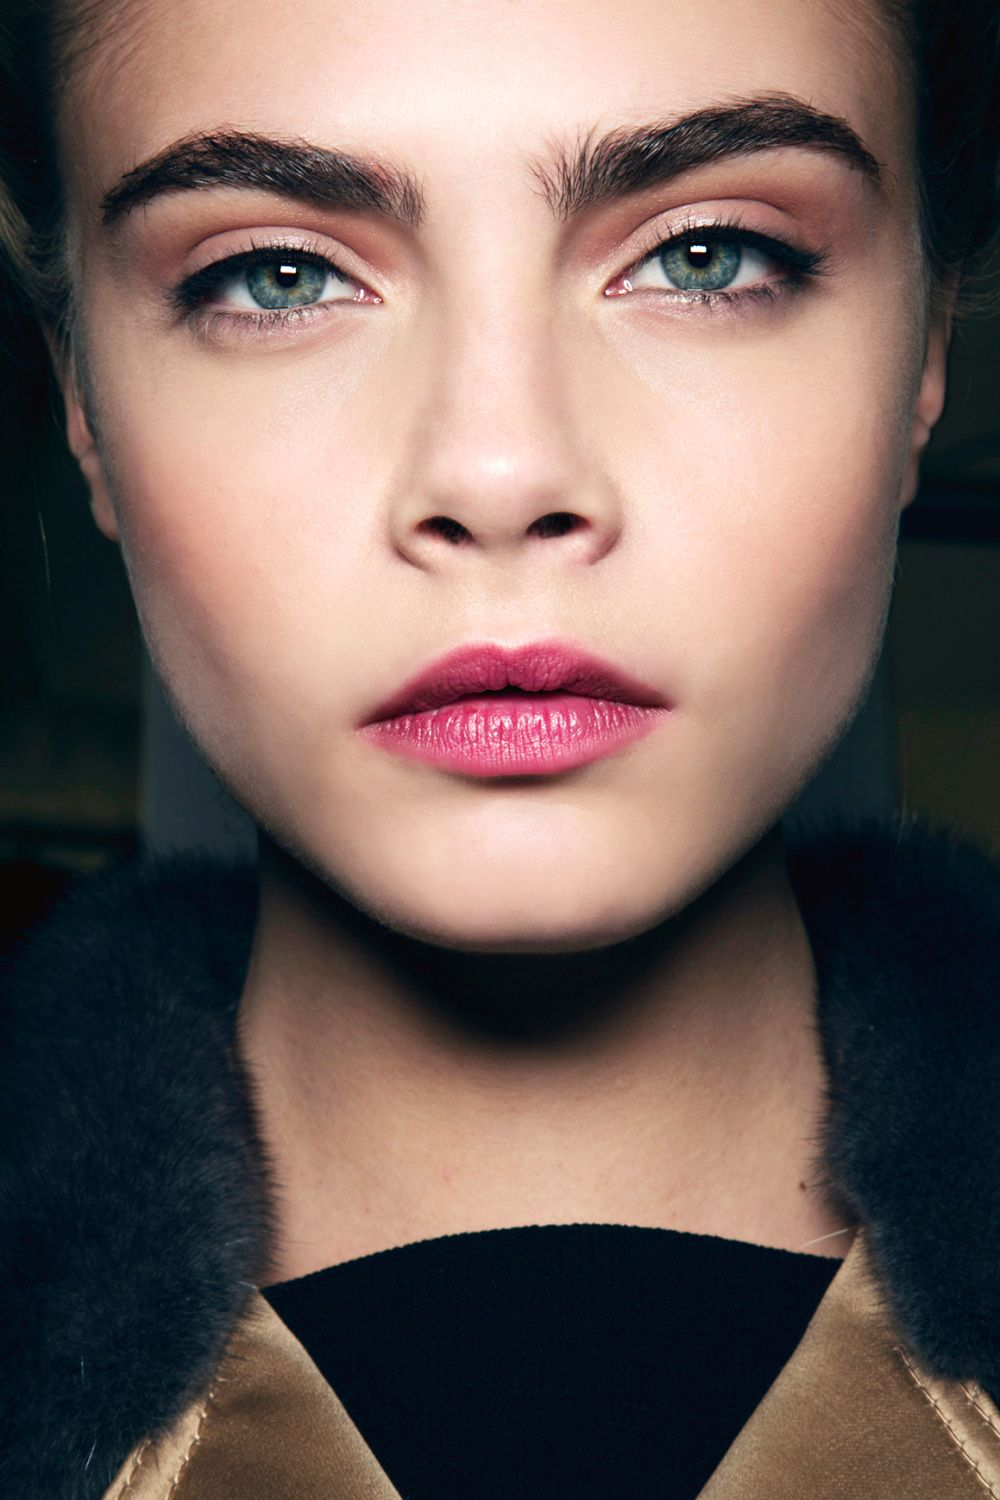 Eyebrows 101: Expert Tips on Growing, Filling In and Shaping YourBrows | Beauty High